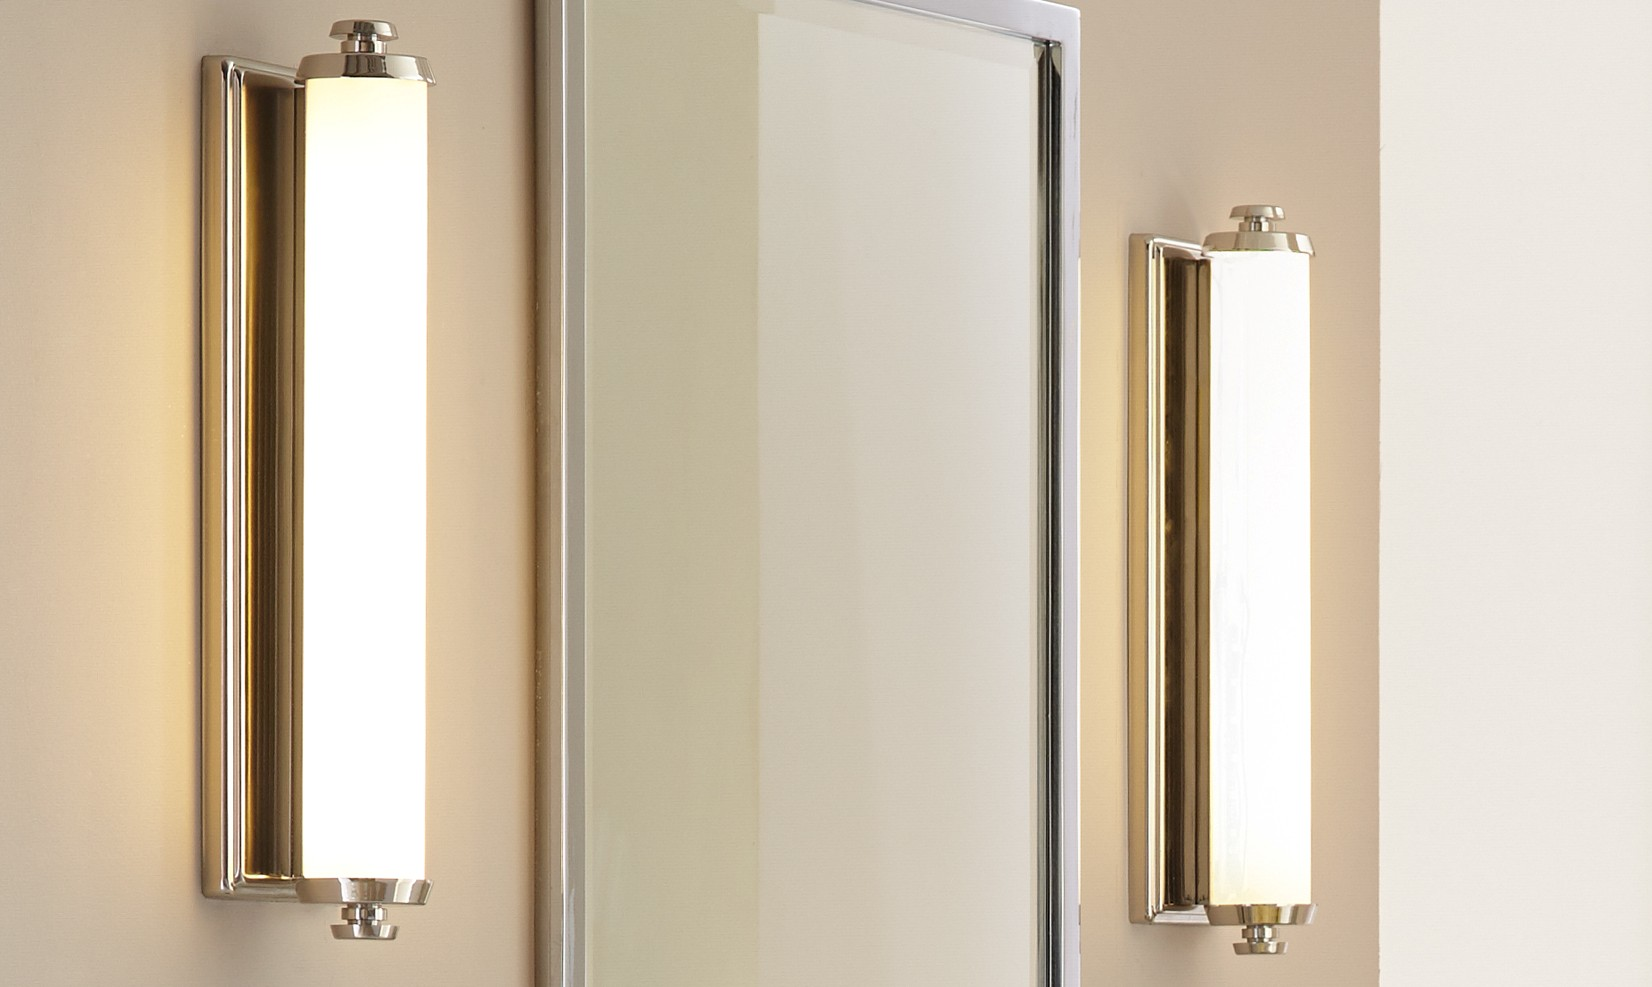 Vanity Lights - Bathroom Fixtures - Lighting Fixtures | Lighting ...